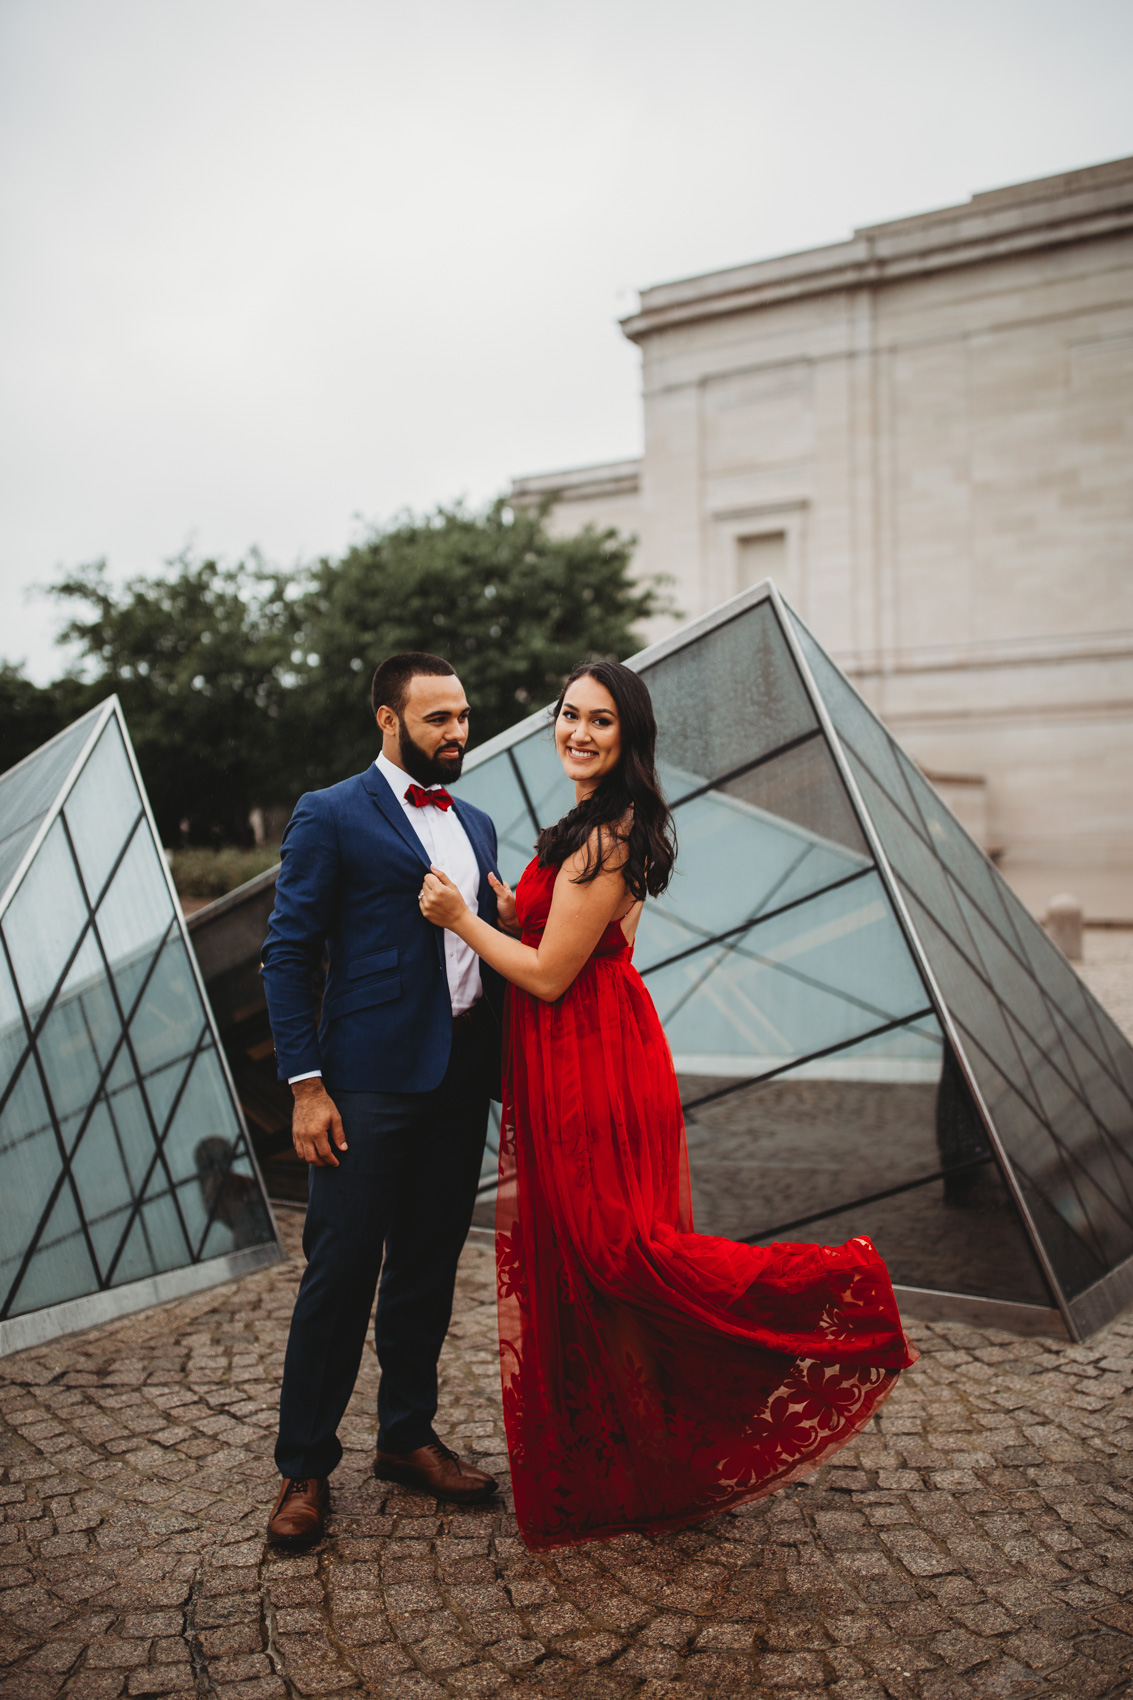 national-art-gallery-engagement-session-25.jpg